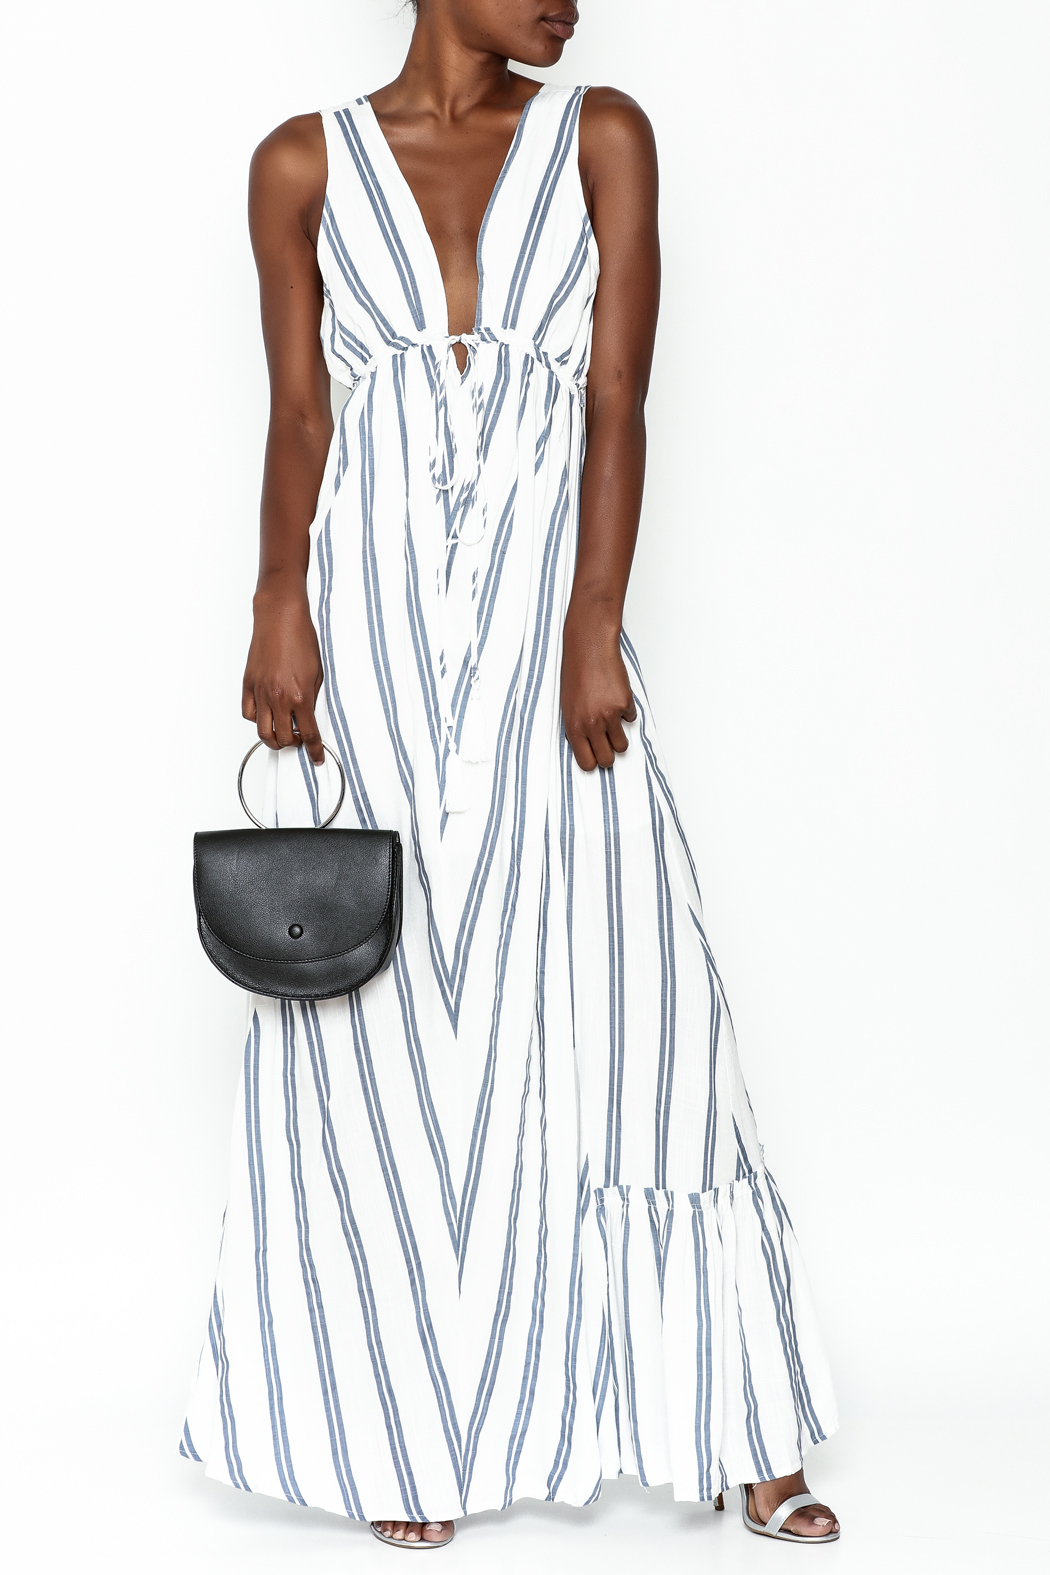 281de207ac8 Hommage Annabelle Striped Maxi Dress from Minneapolis by ...